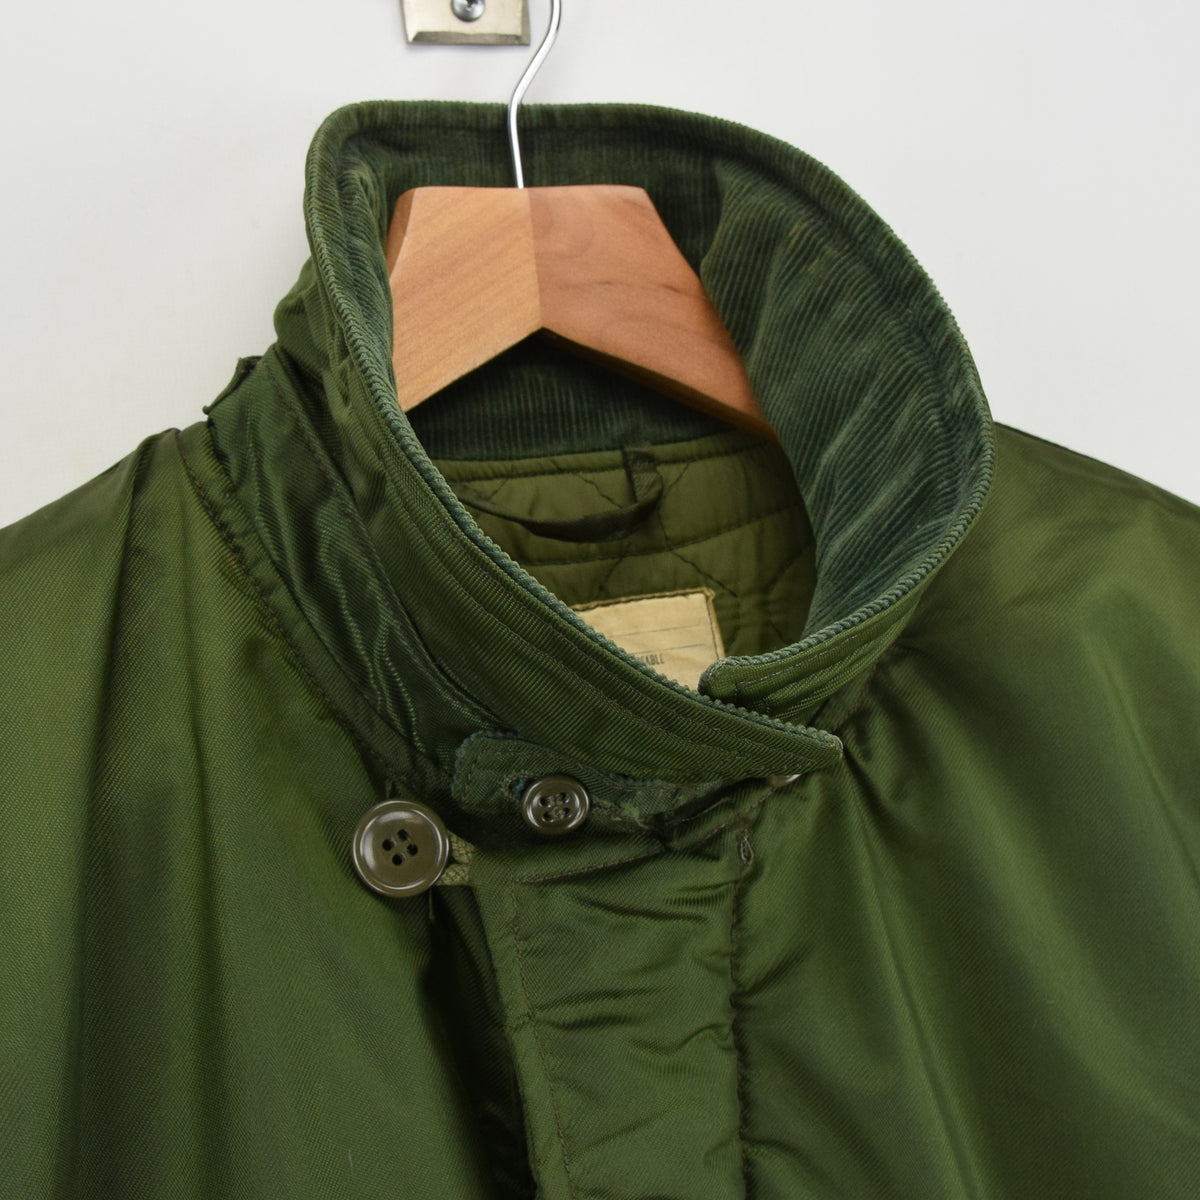 Vintage 70s Military Alpha Industries US Navy Cold Weather Impermeable Jacket L collar